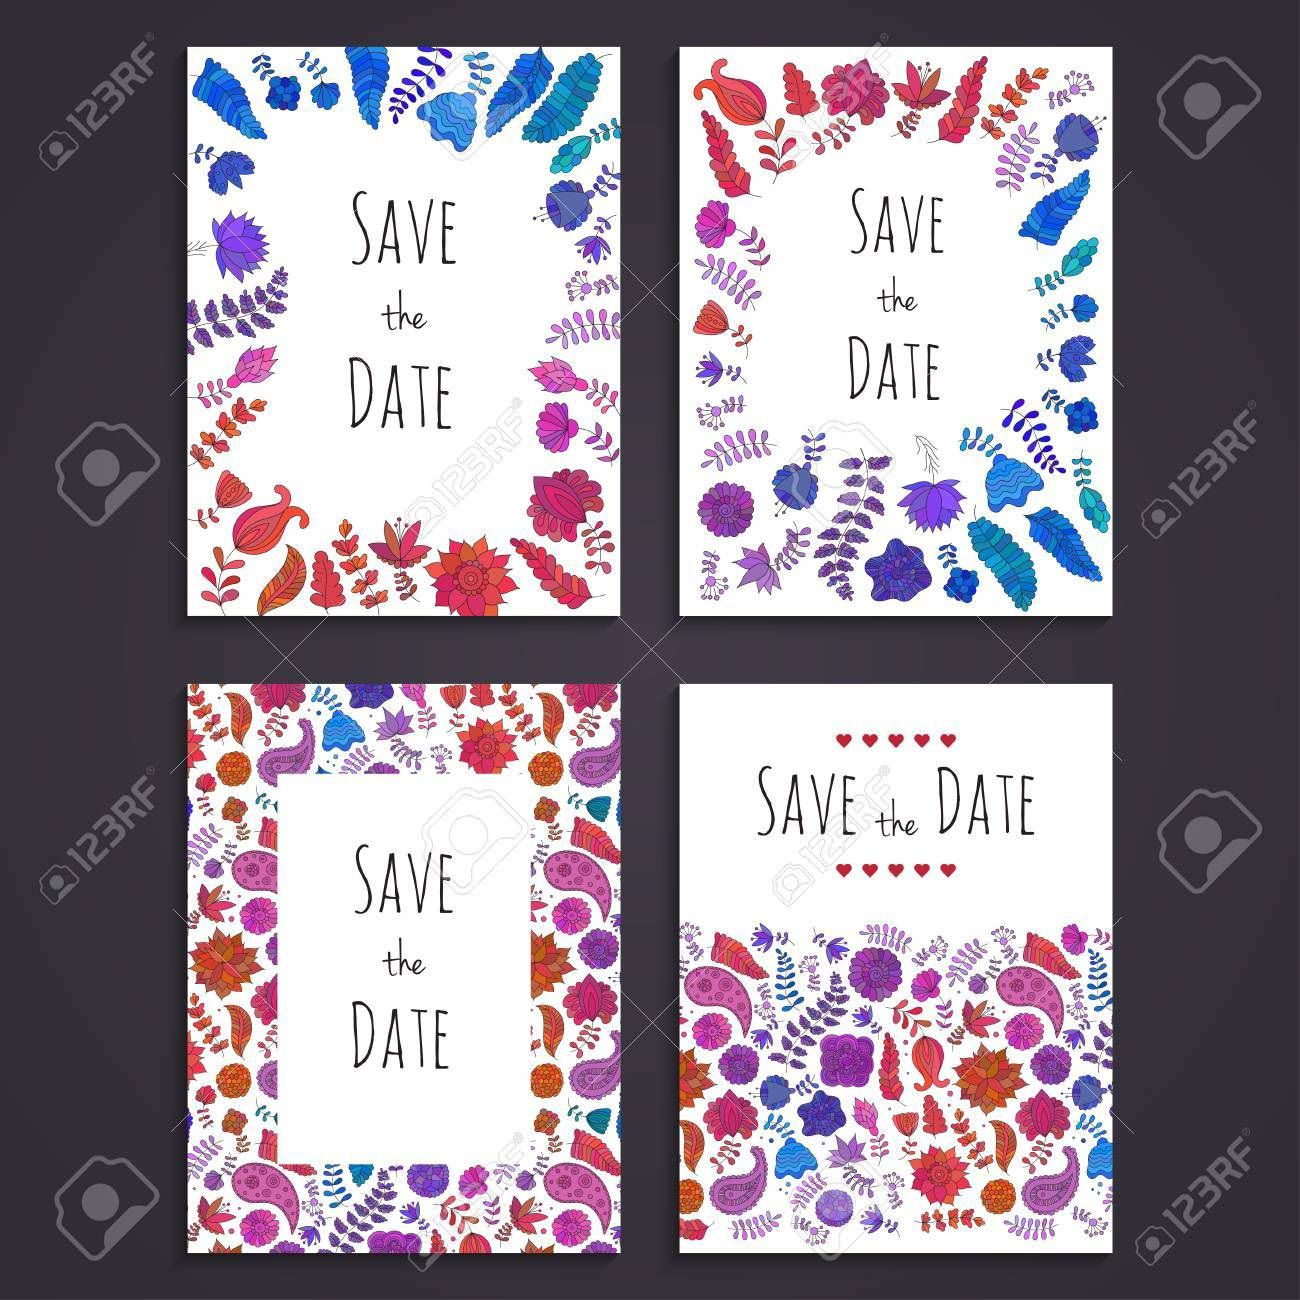 003 Staggering Free Save The Date Birthday Postcard Template High Def  TemplatesFull